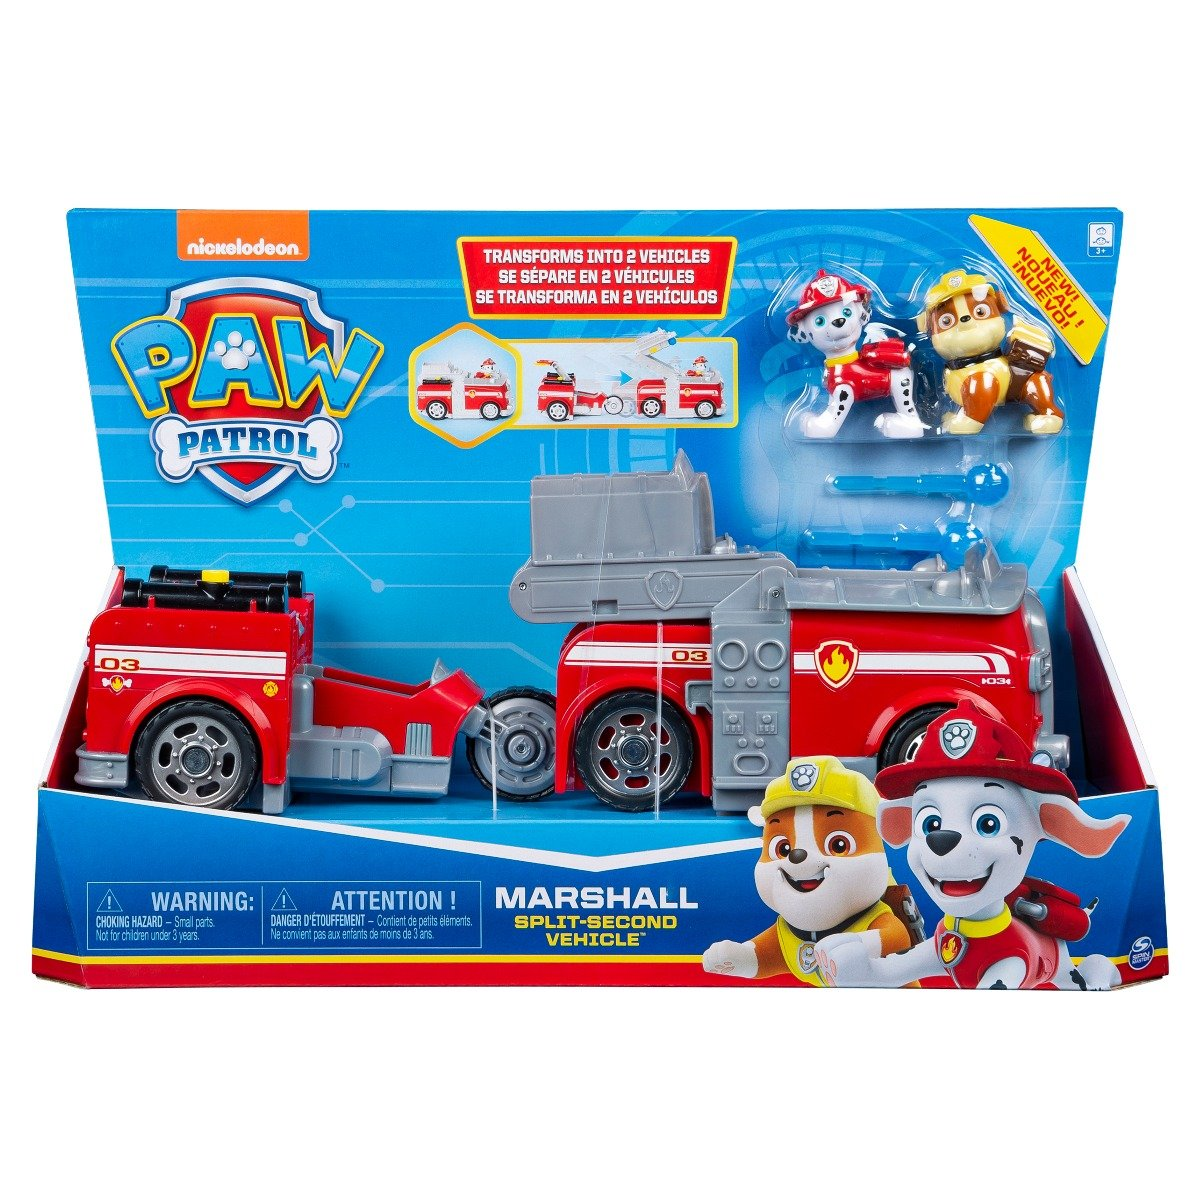 Set Masinuta cu figurine Paw Patrol Split Second Vehicle 20122546